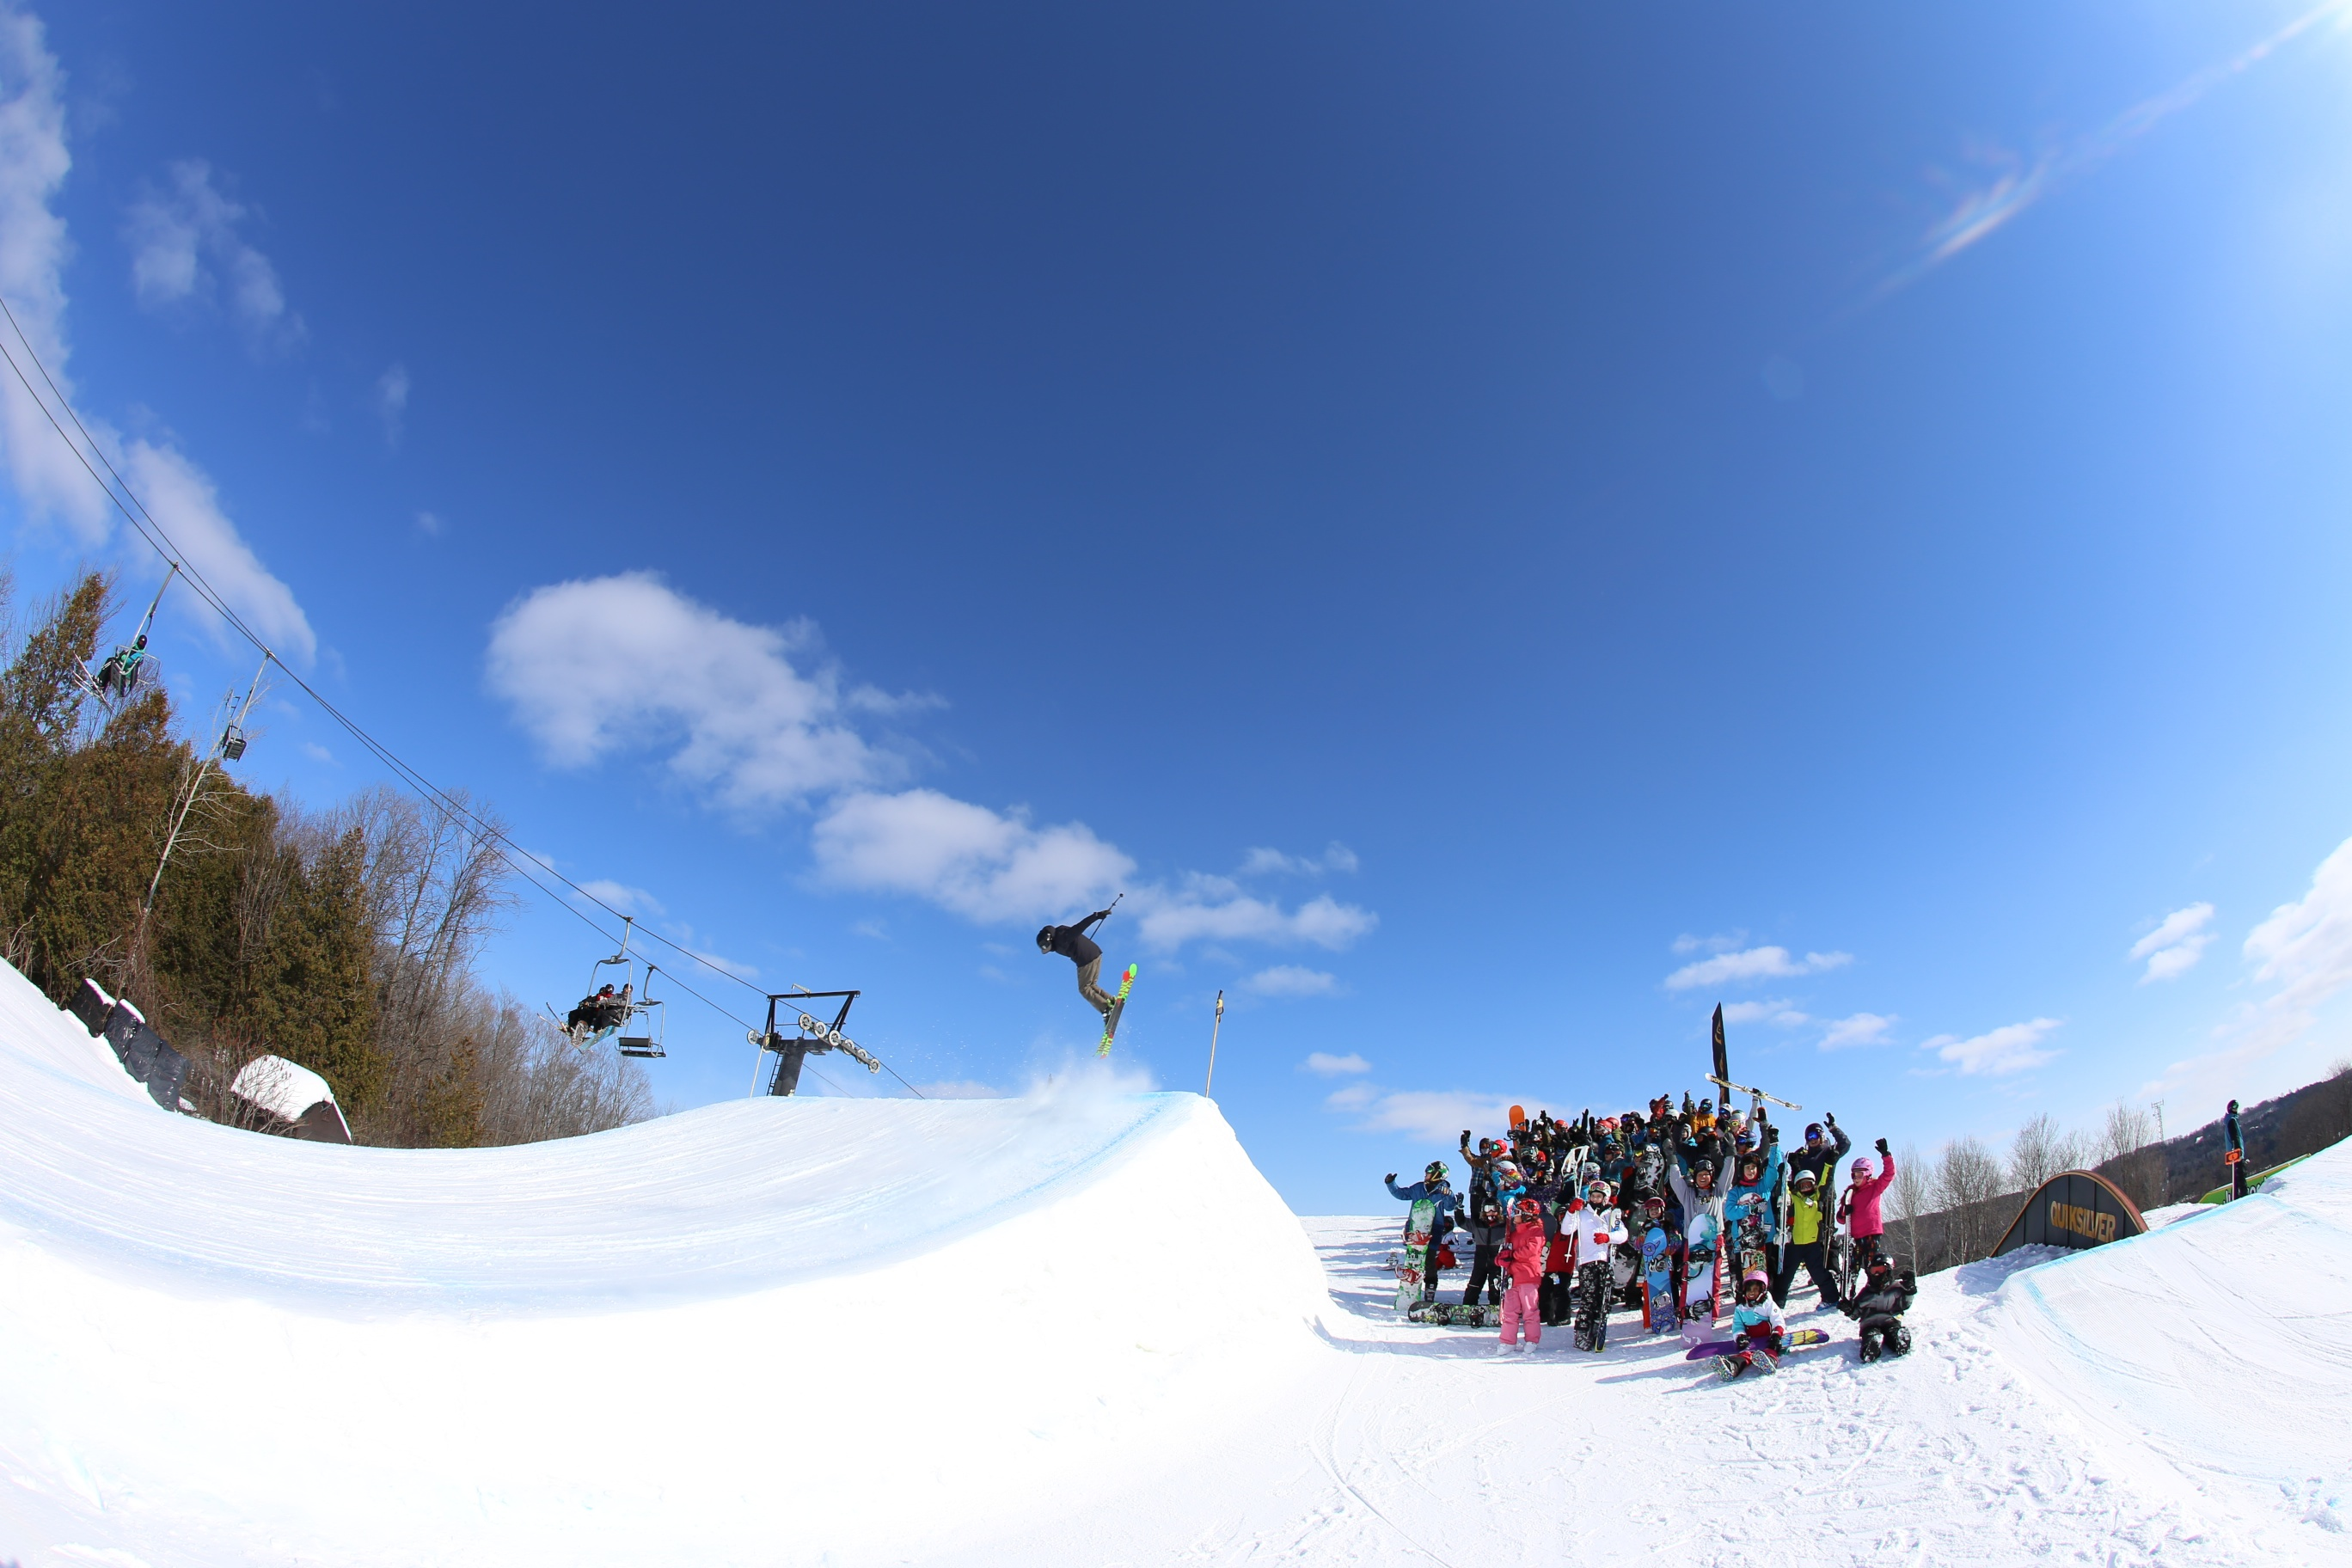 snow camp chat sites Snow camp tourism: tripadvisor has 53 reviews of snow camp hotels, attractions, and restaurants making it your best snow camp resource.